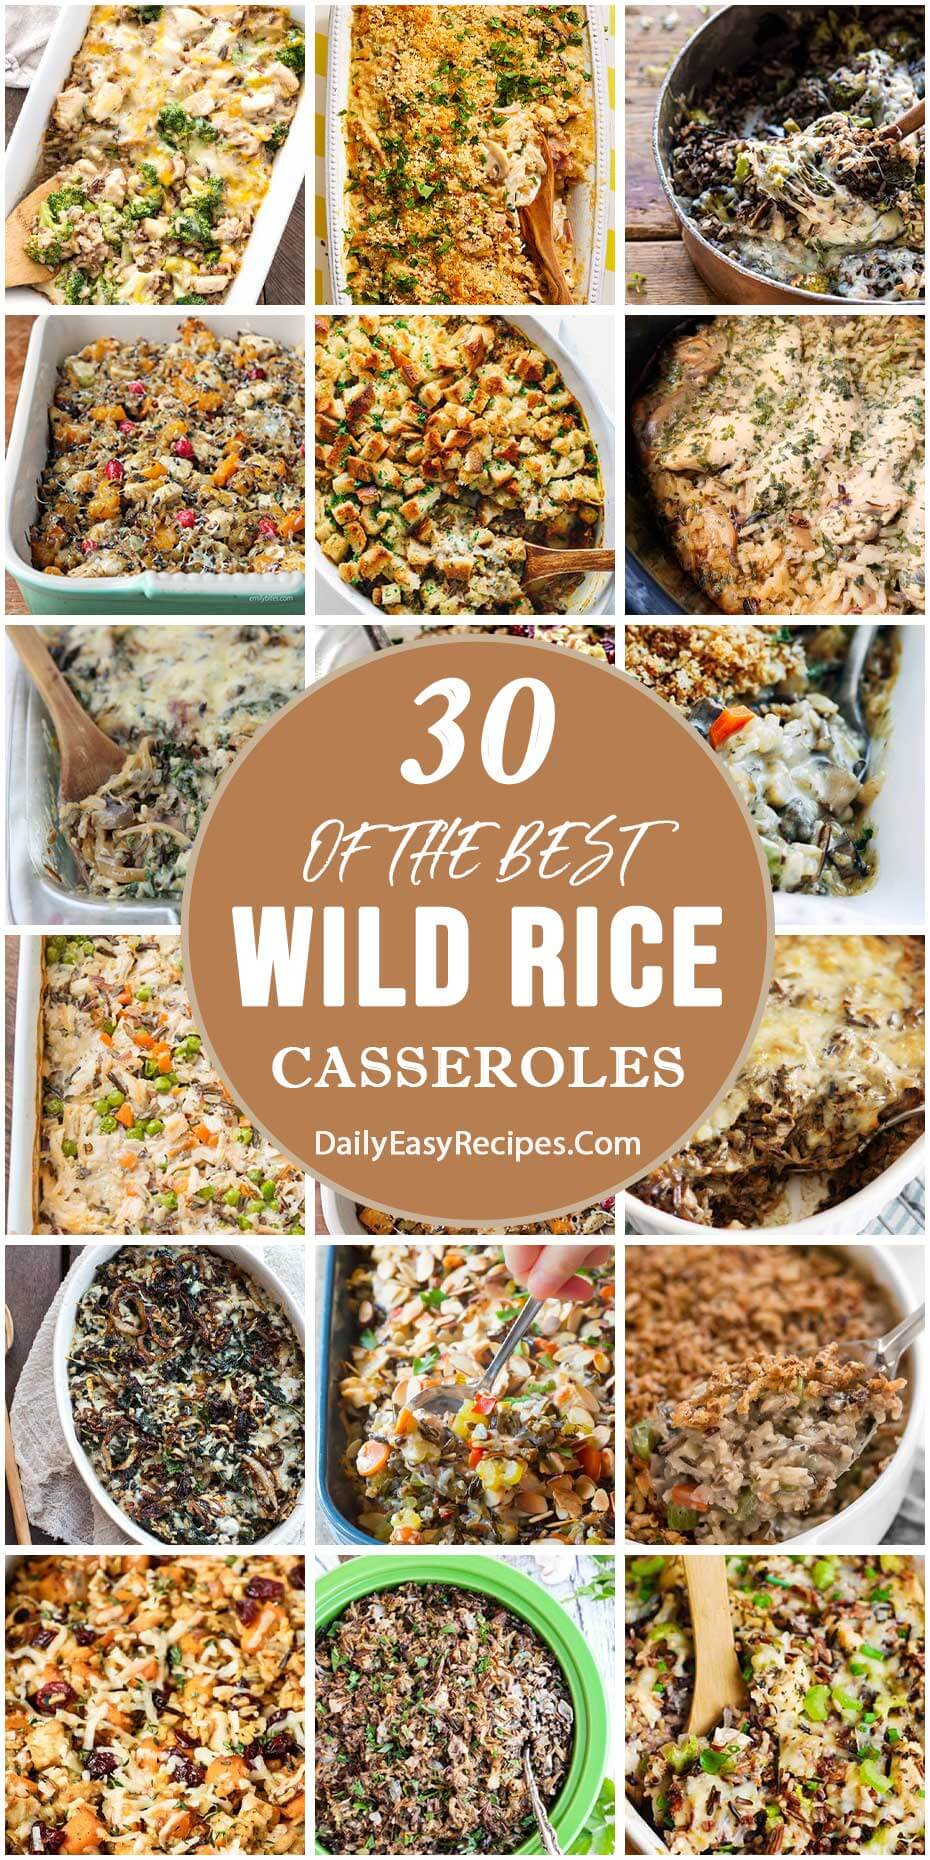 30 Best Wild Rice Casseroles You Should Try